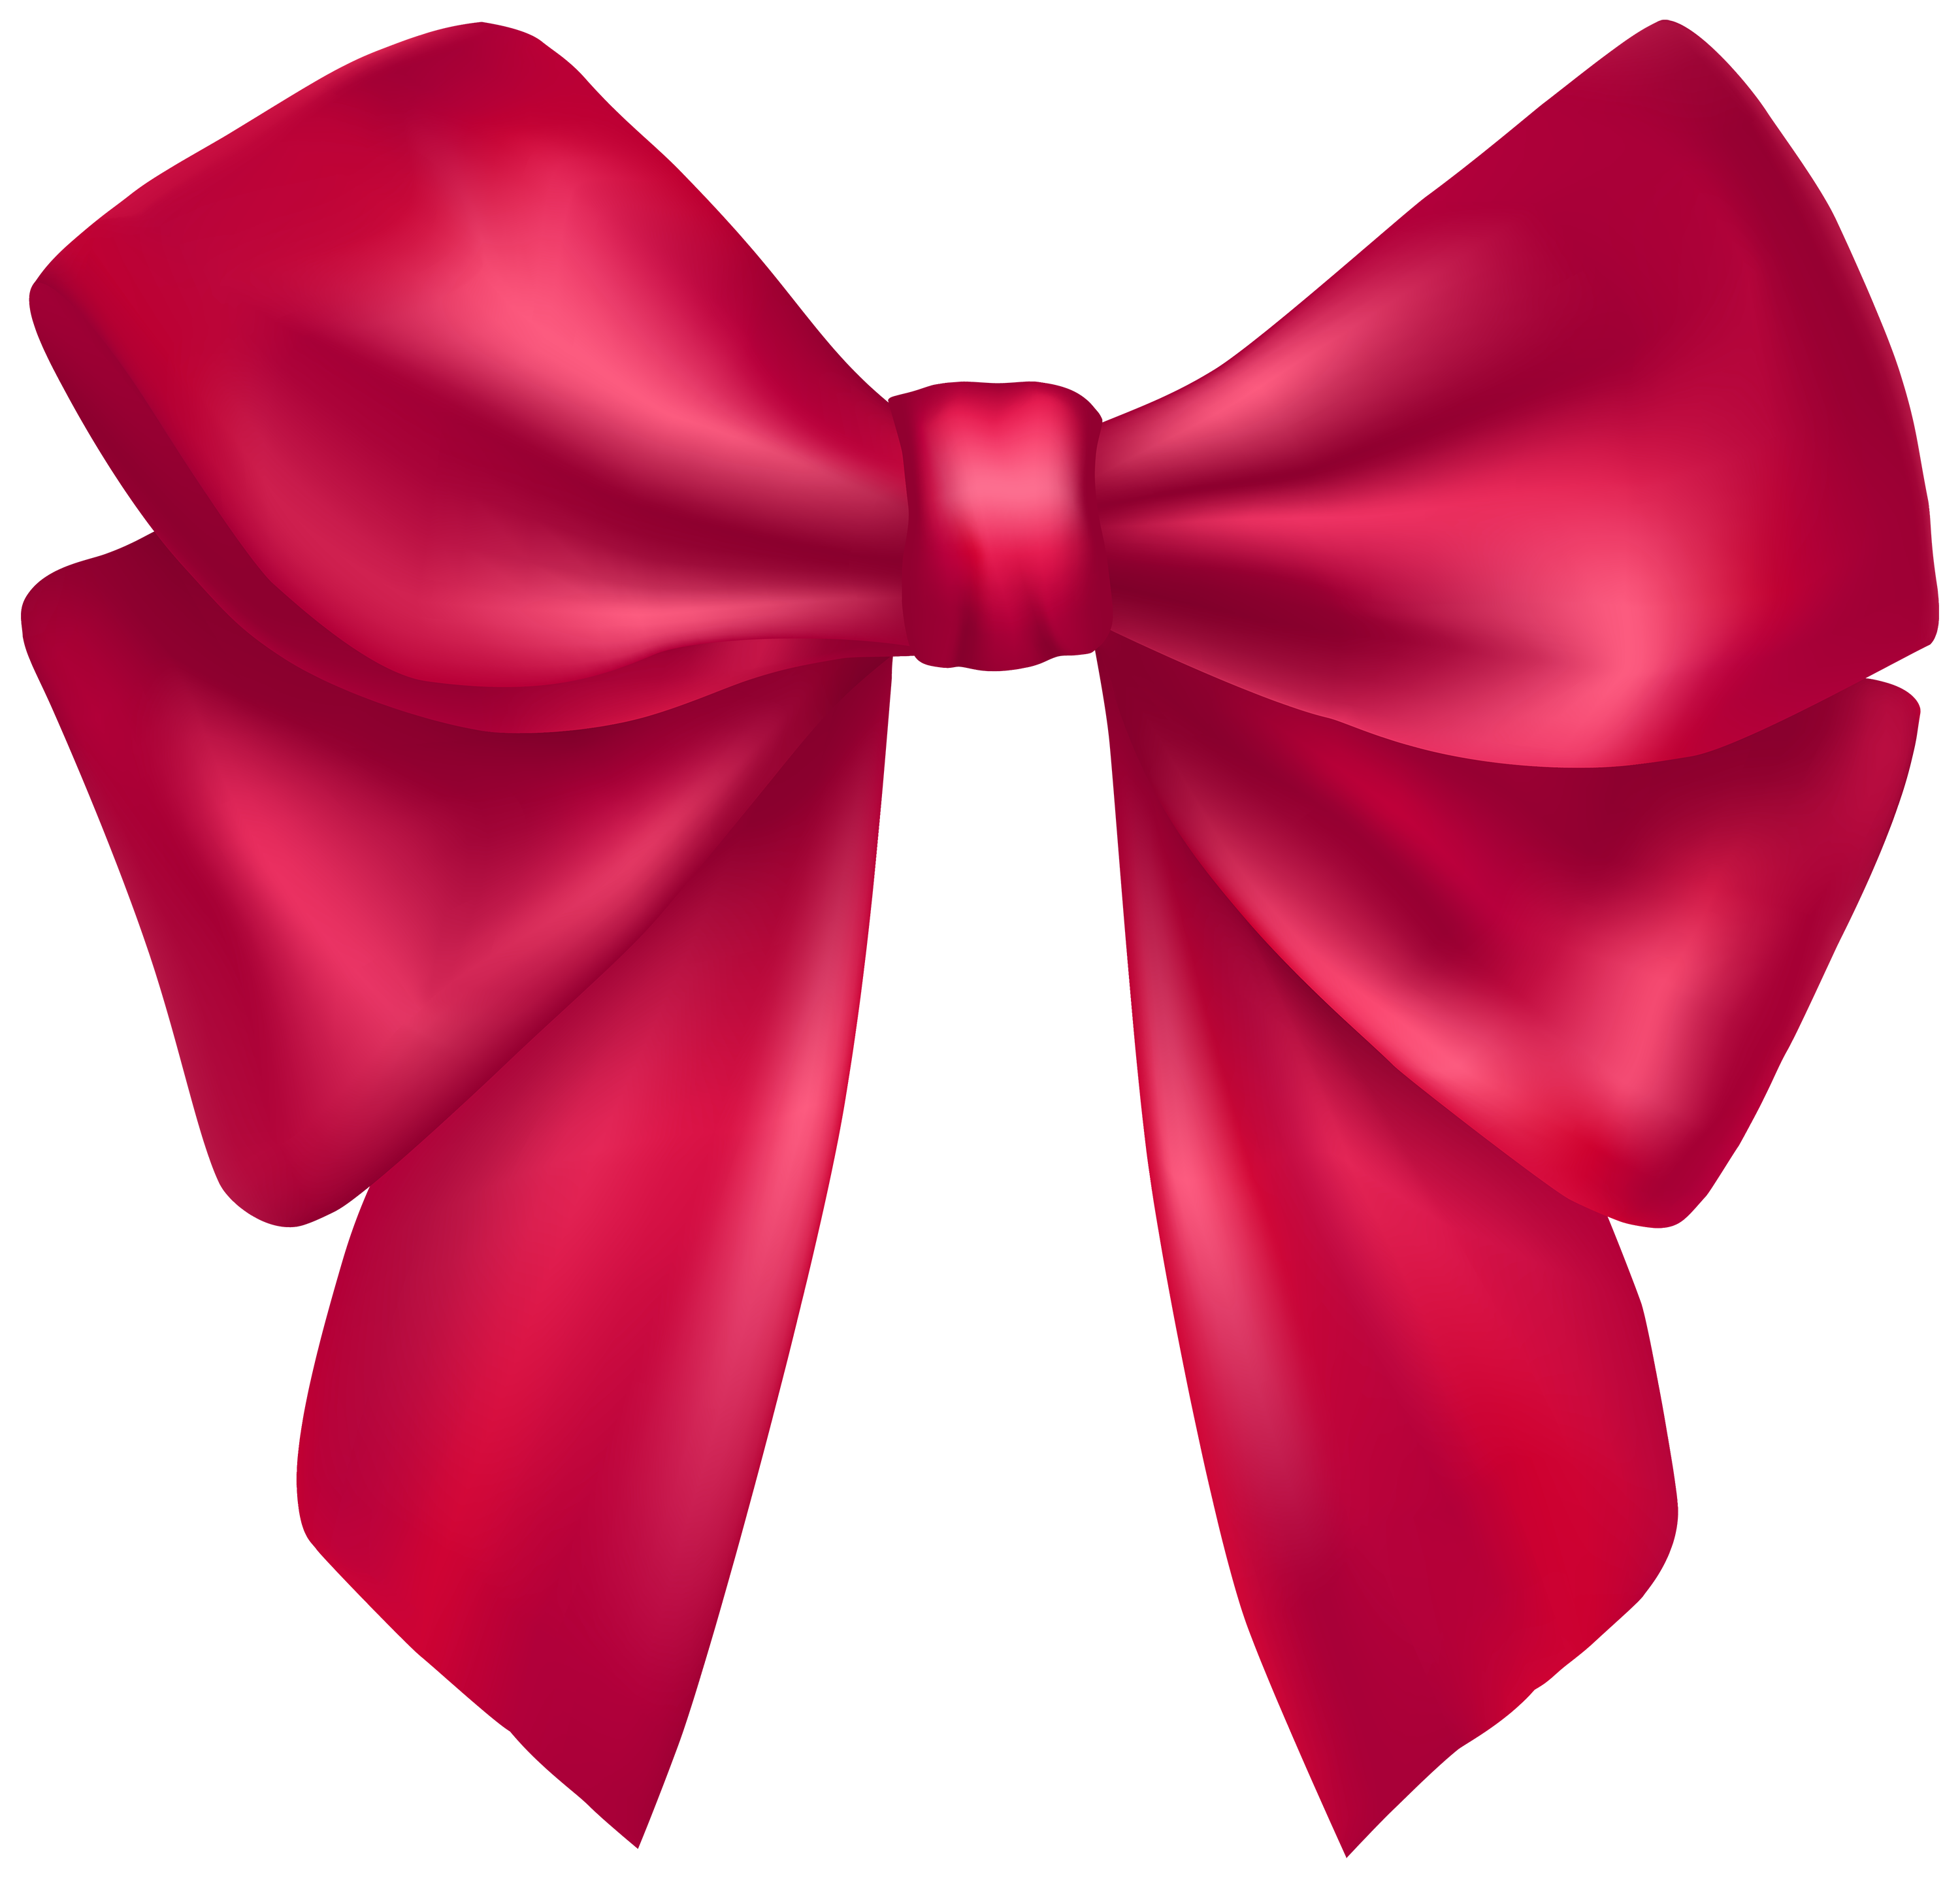 Png Clip Art Bows Google Search Bow Clipart Pink Bow Clip Art